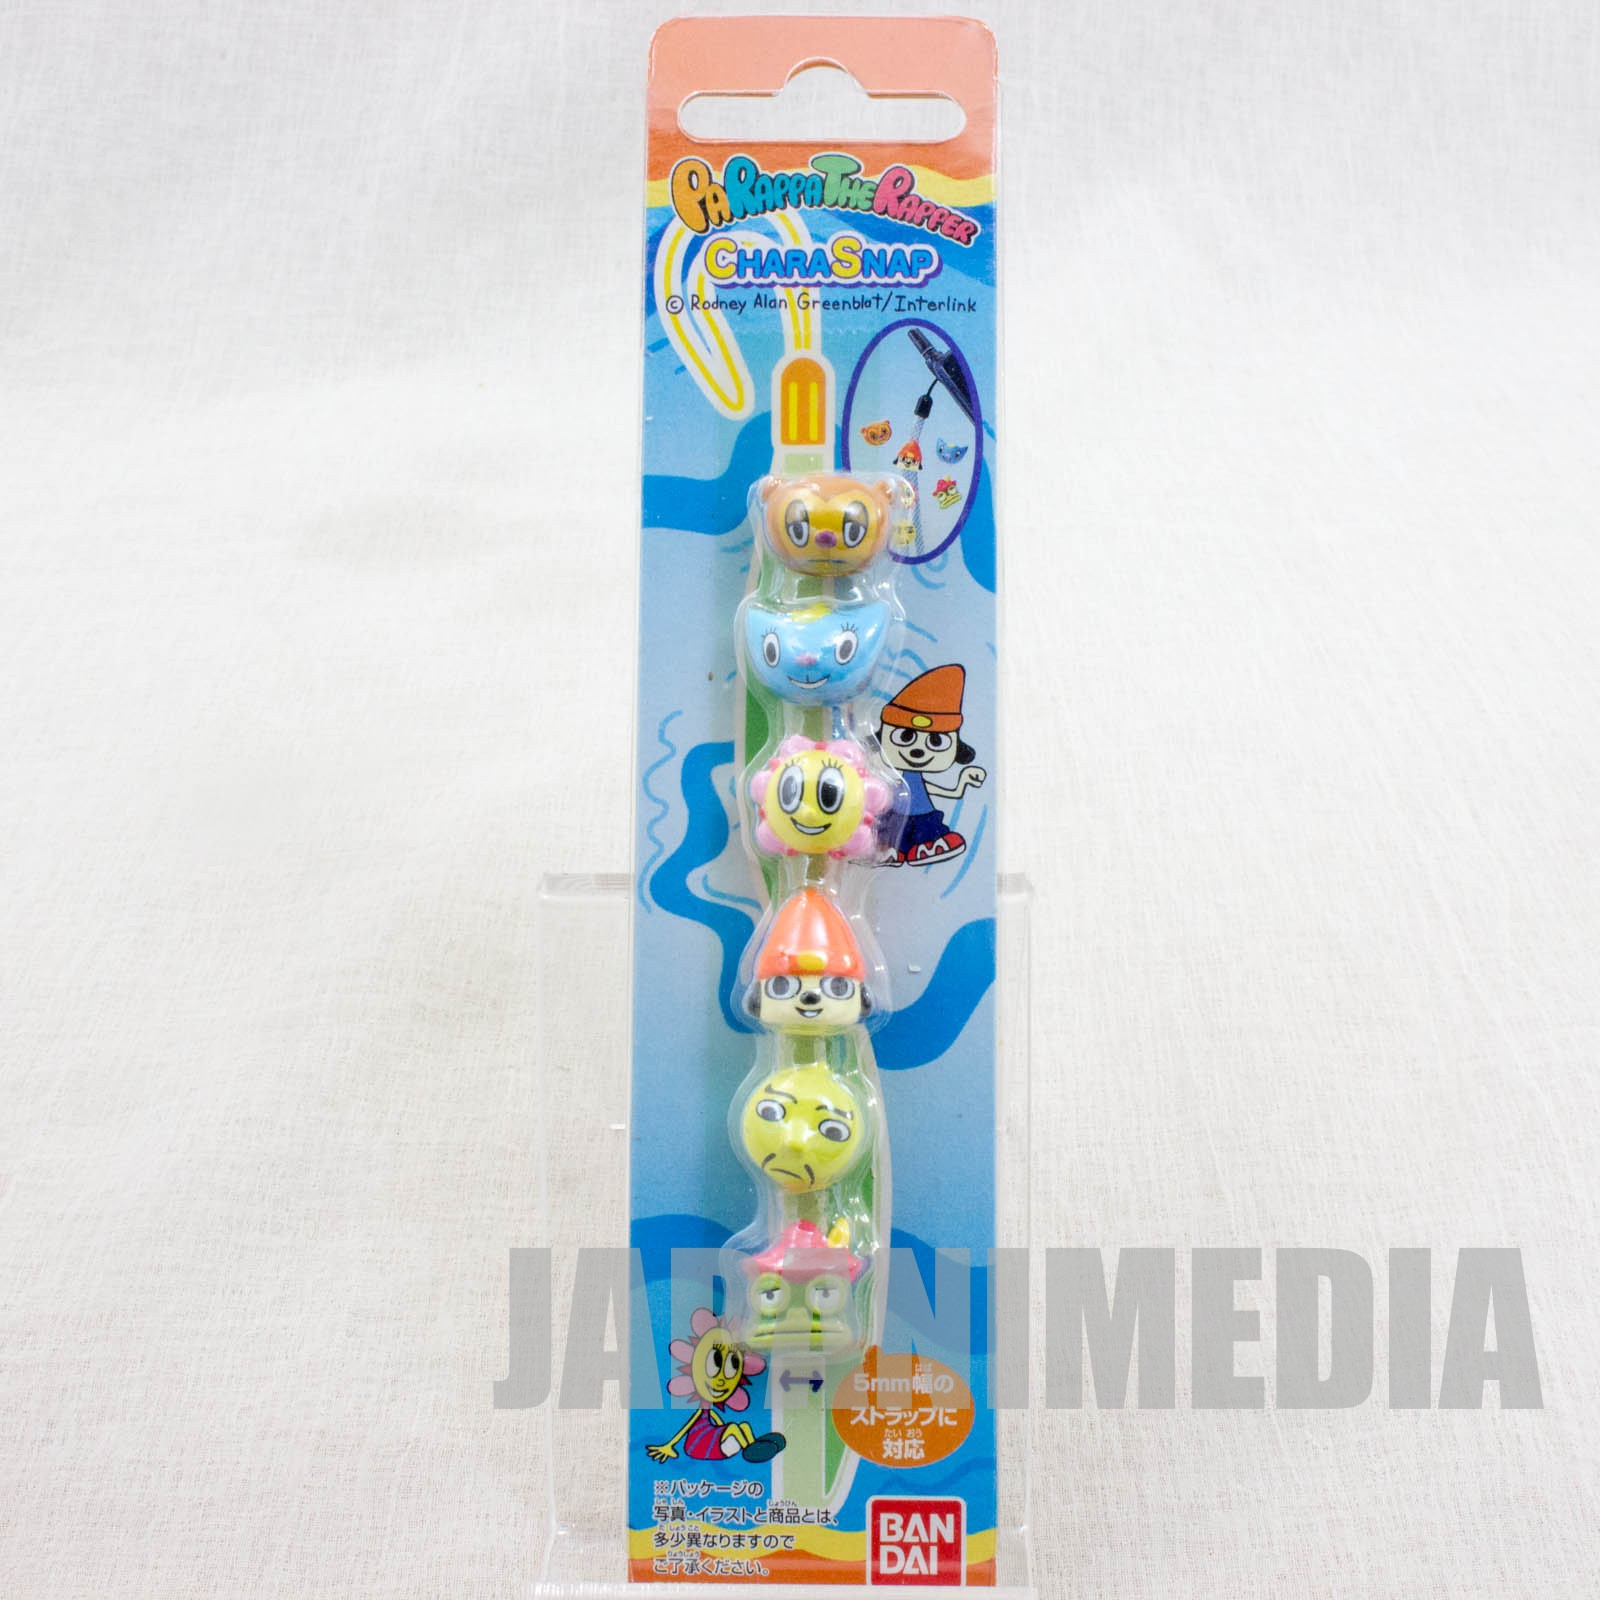 Parappa The Rapper Chara Snap button 6pc Set JAPAN GAME